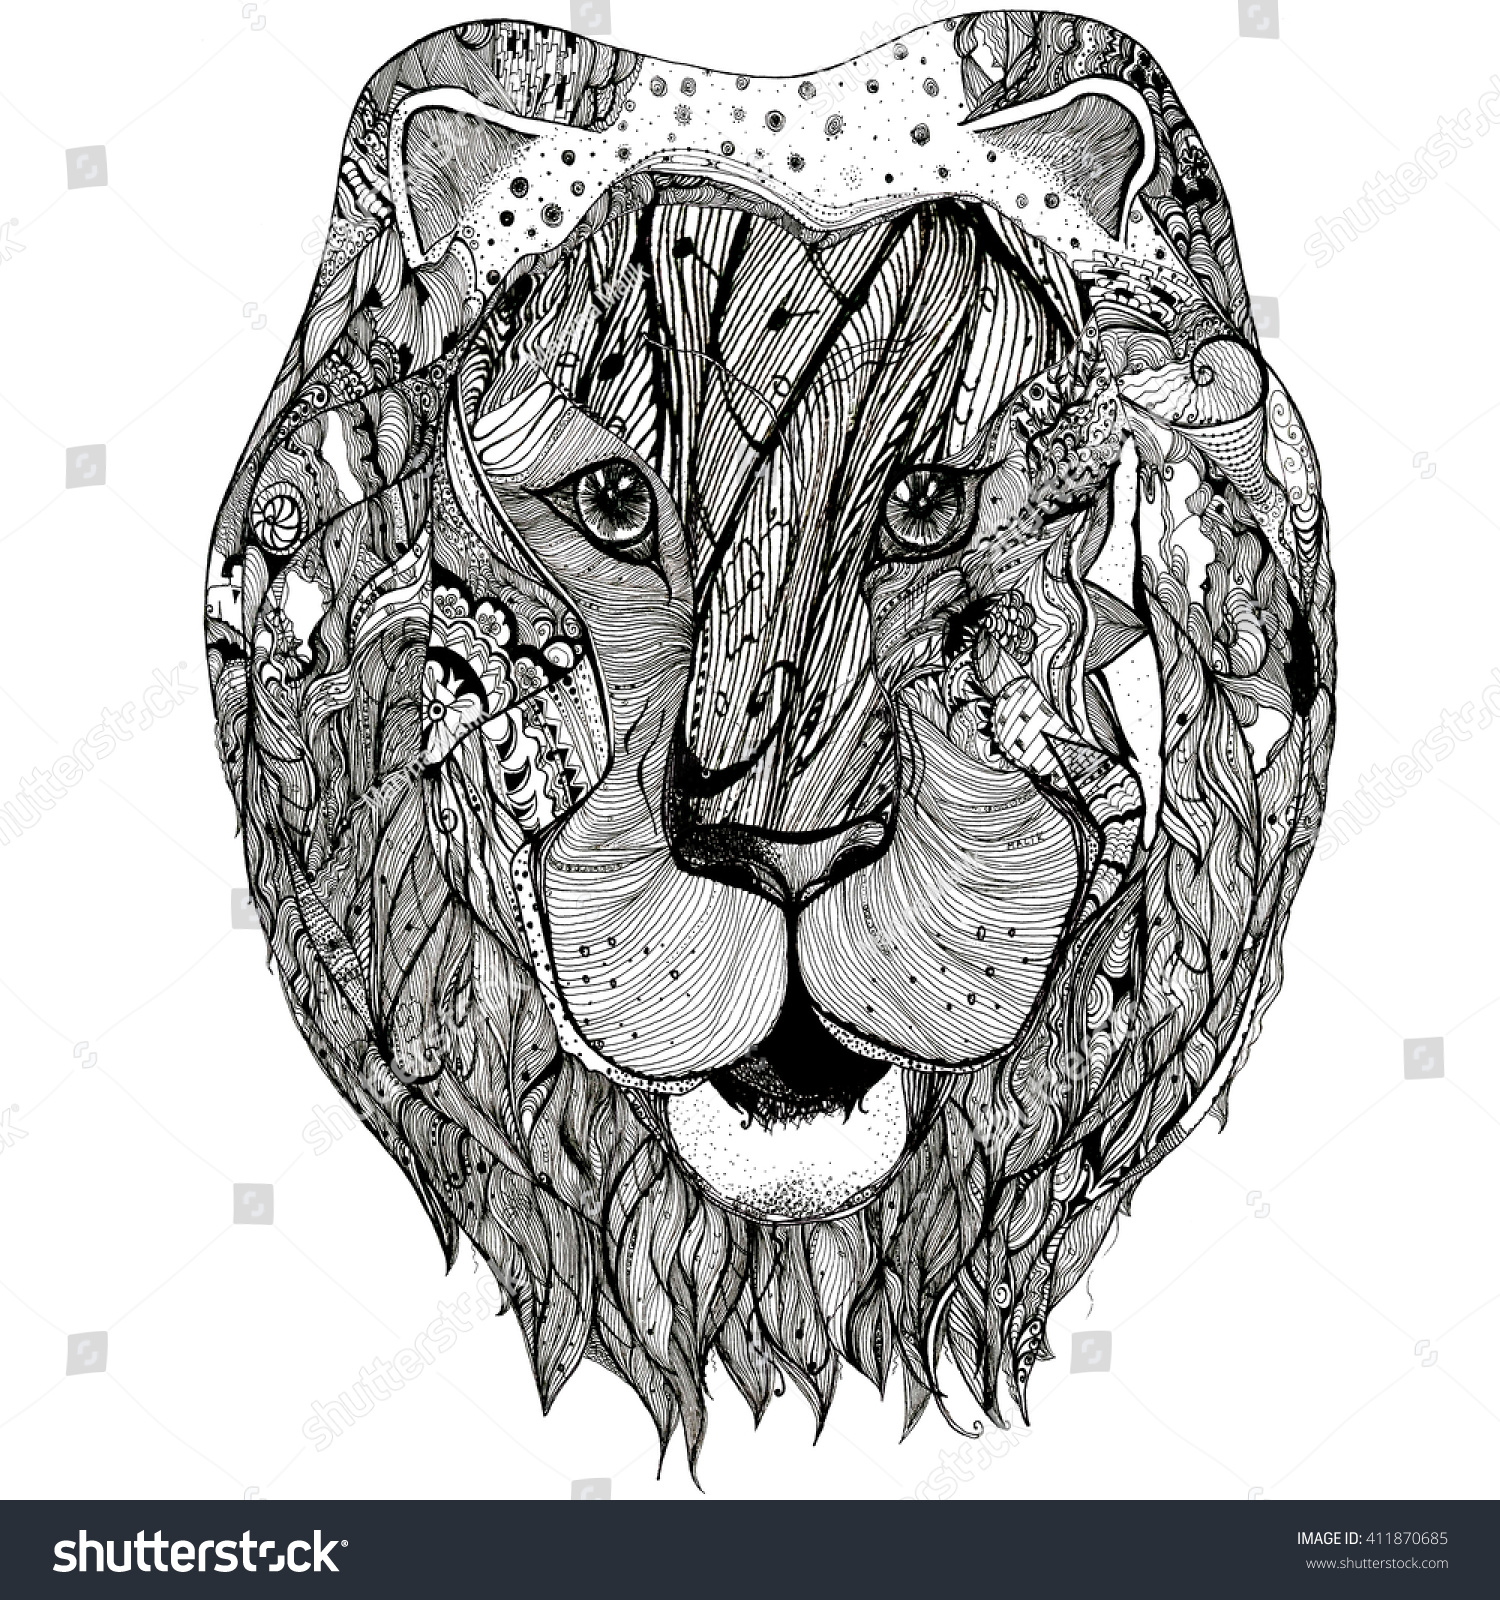 Coloring book for adults lion - Lion Black White Hand Drawn Doodle Illustration Sketch For Adult Coloring Book Page